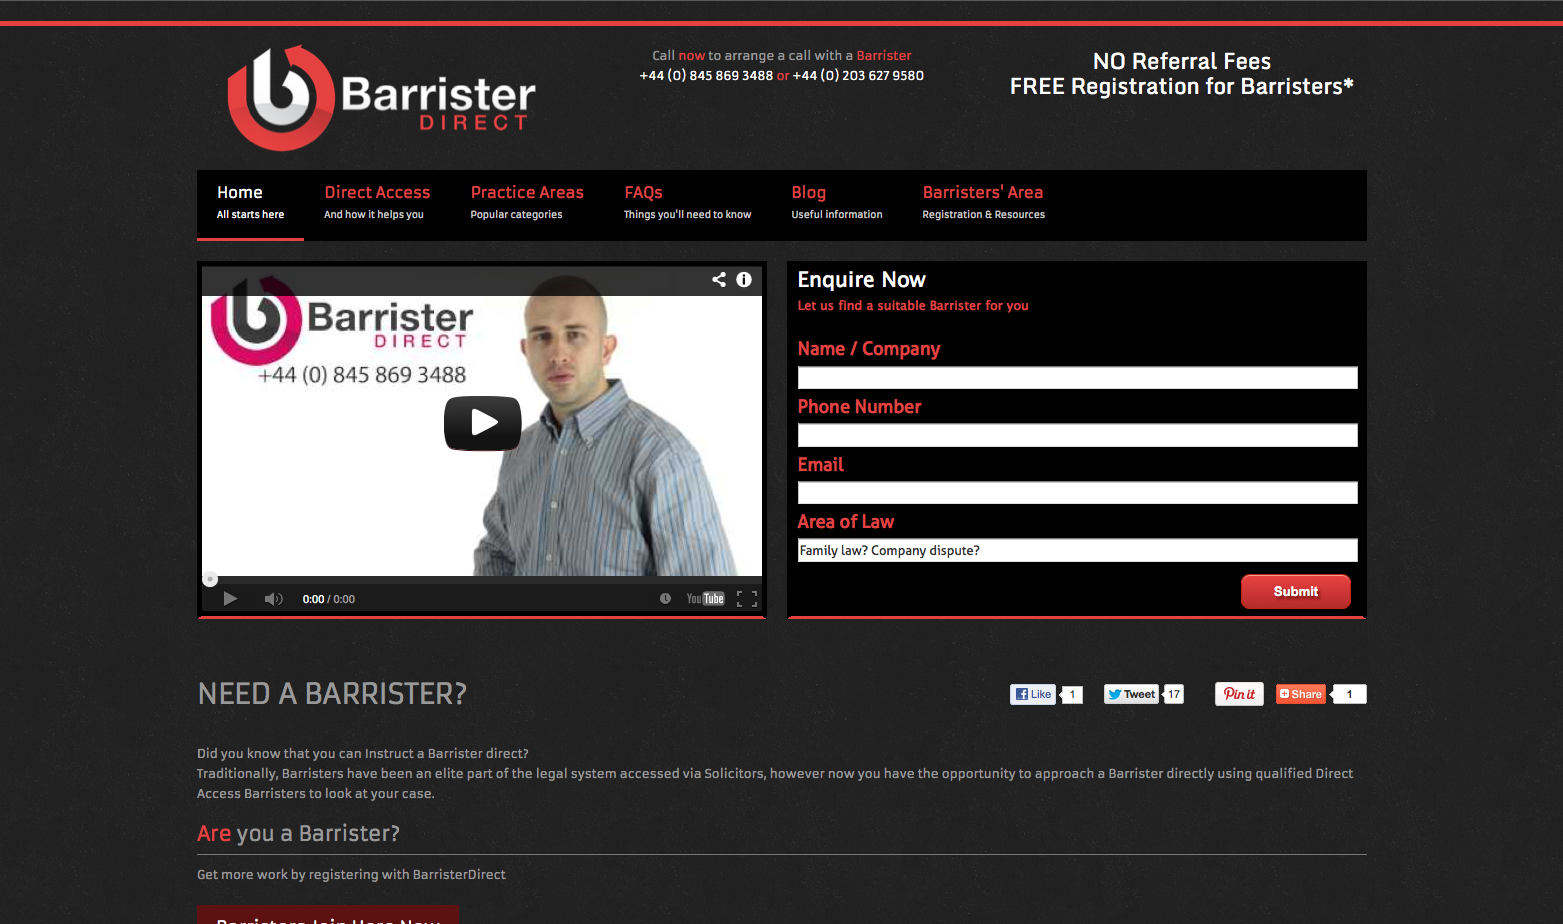 BarristerDirect.co.uk